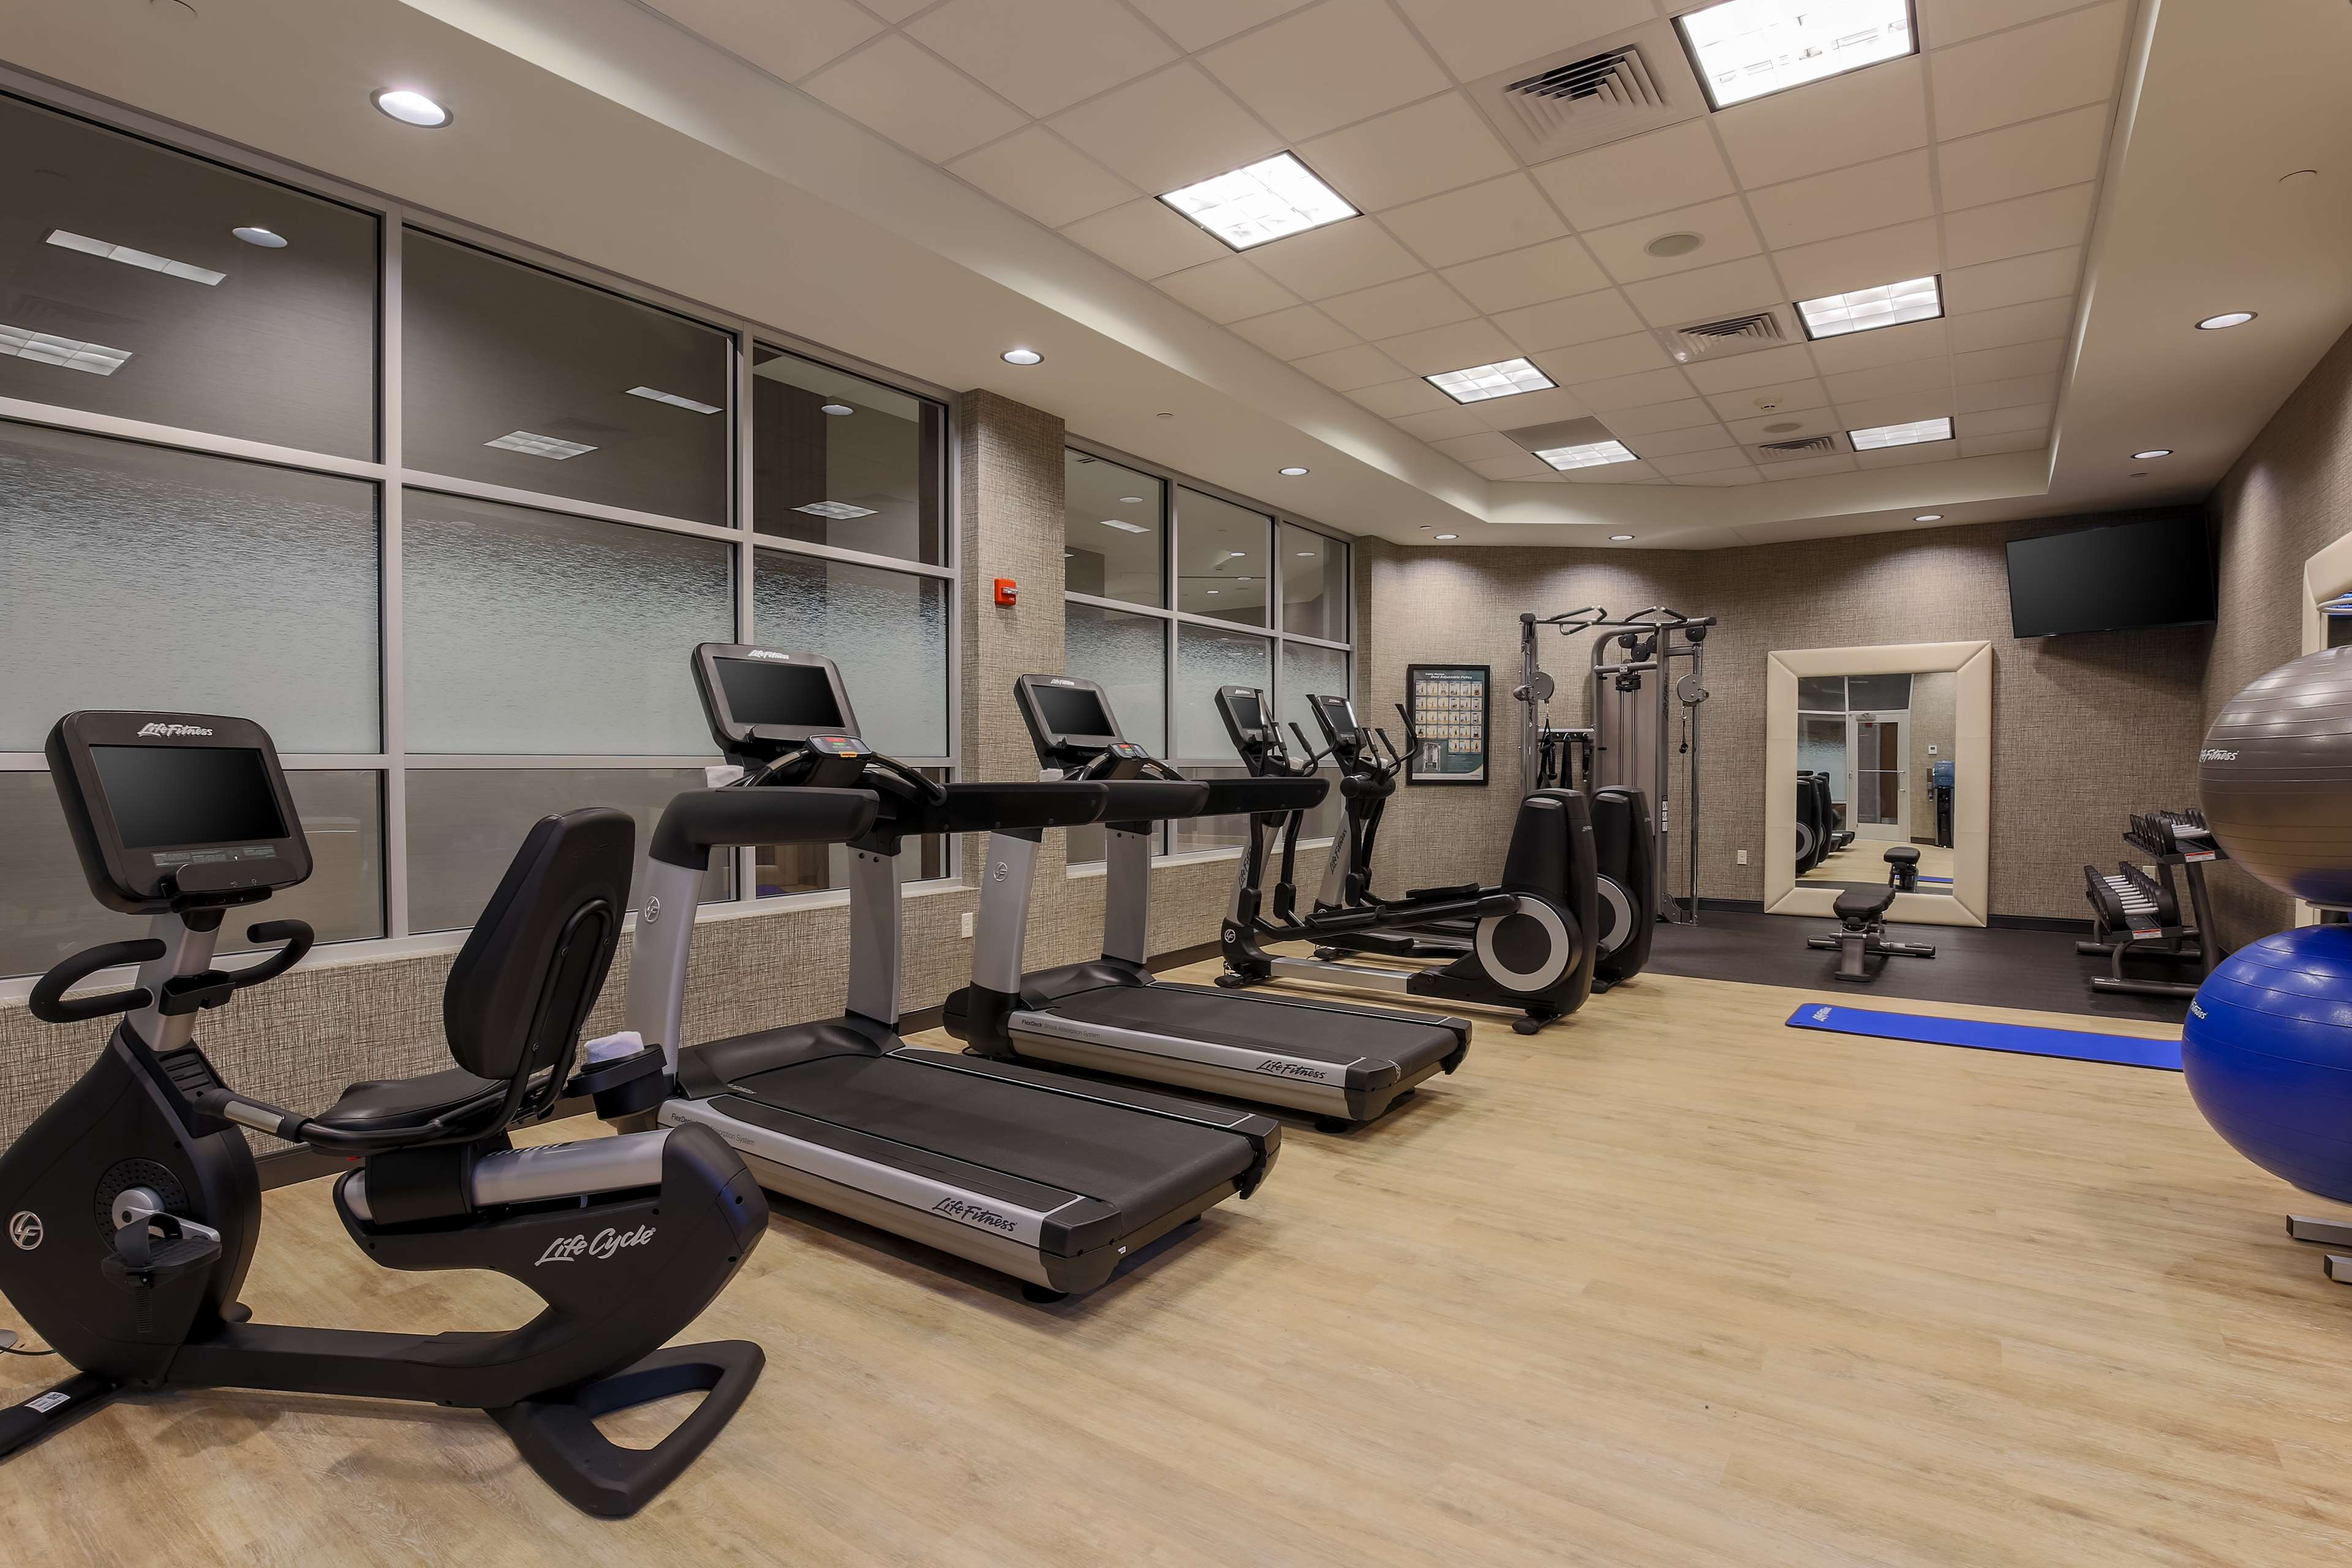 DoubleTree by Hilton Evansville image 16